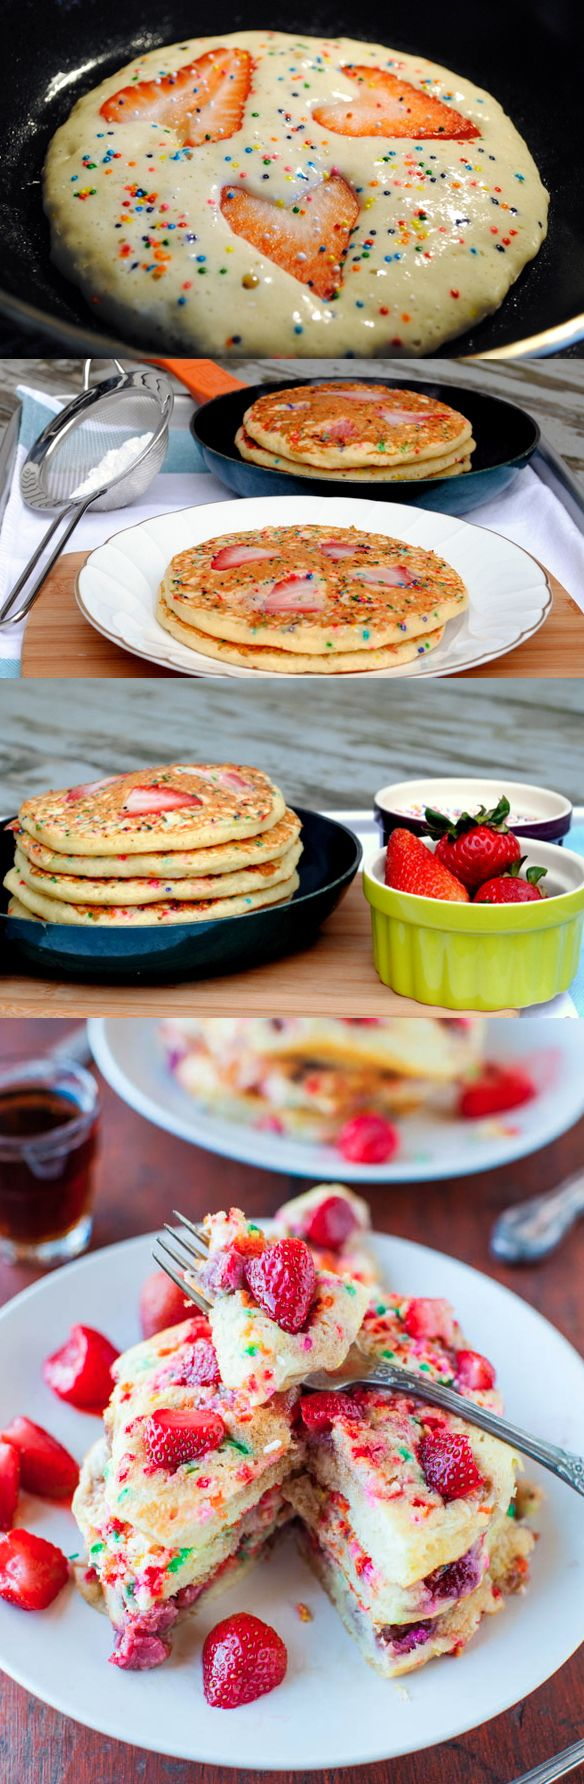 Strawberry Funfetti Pancakes (Panqueques de Frutillas)